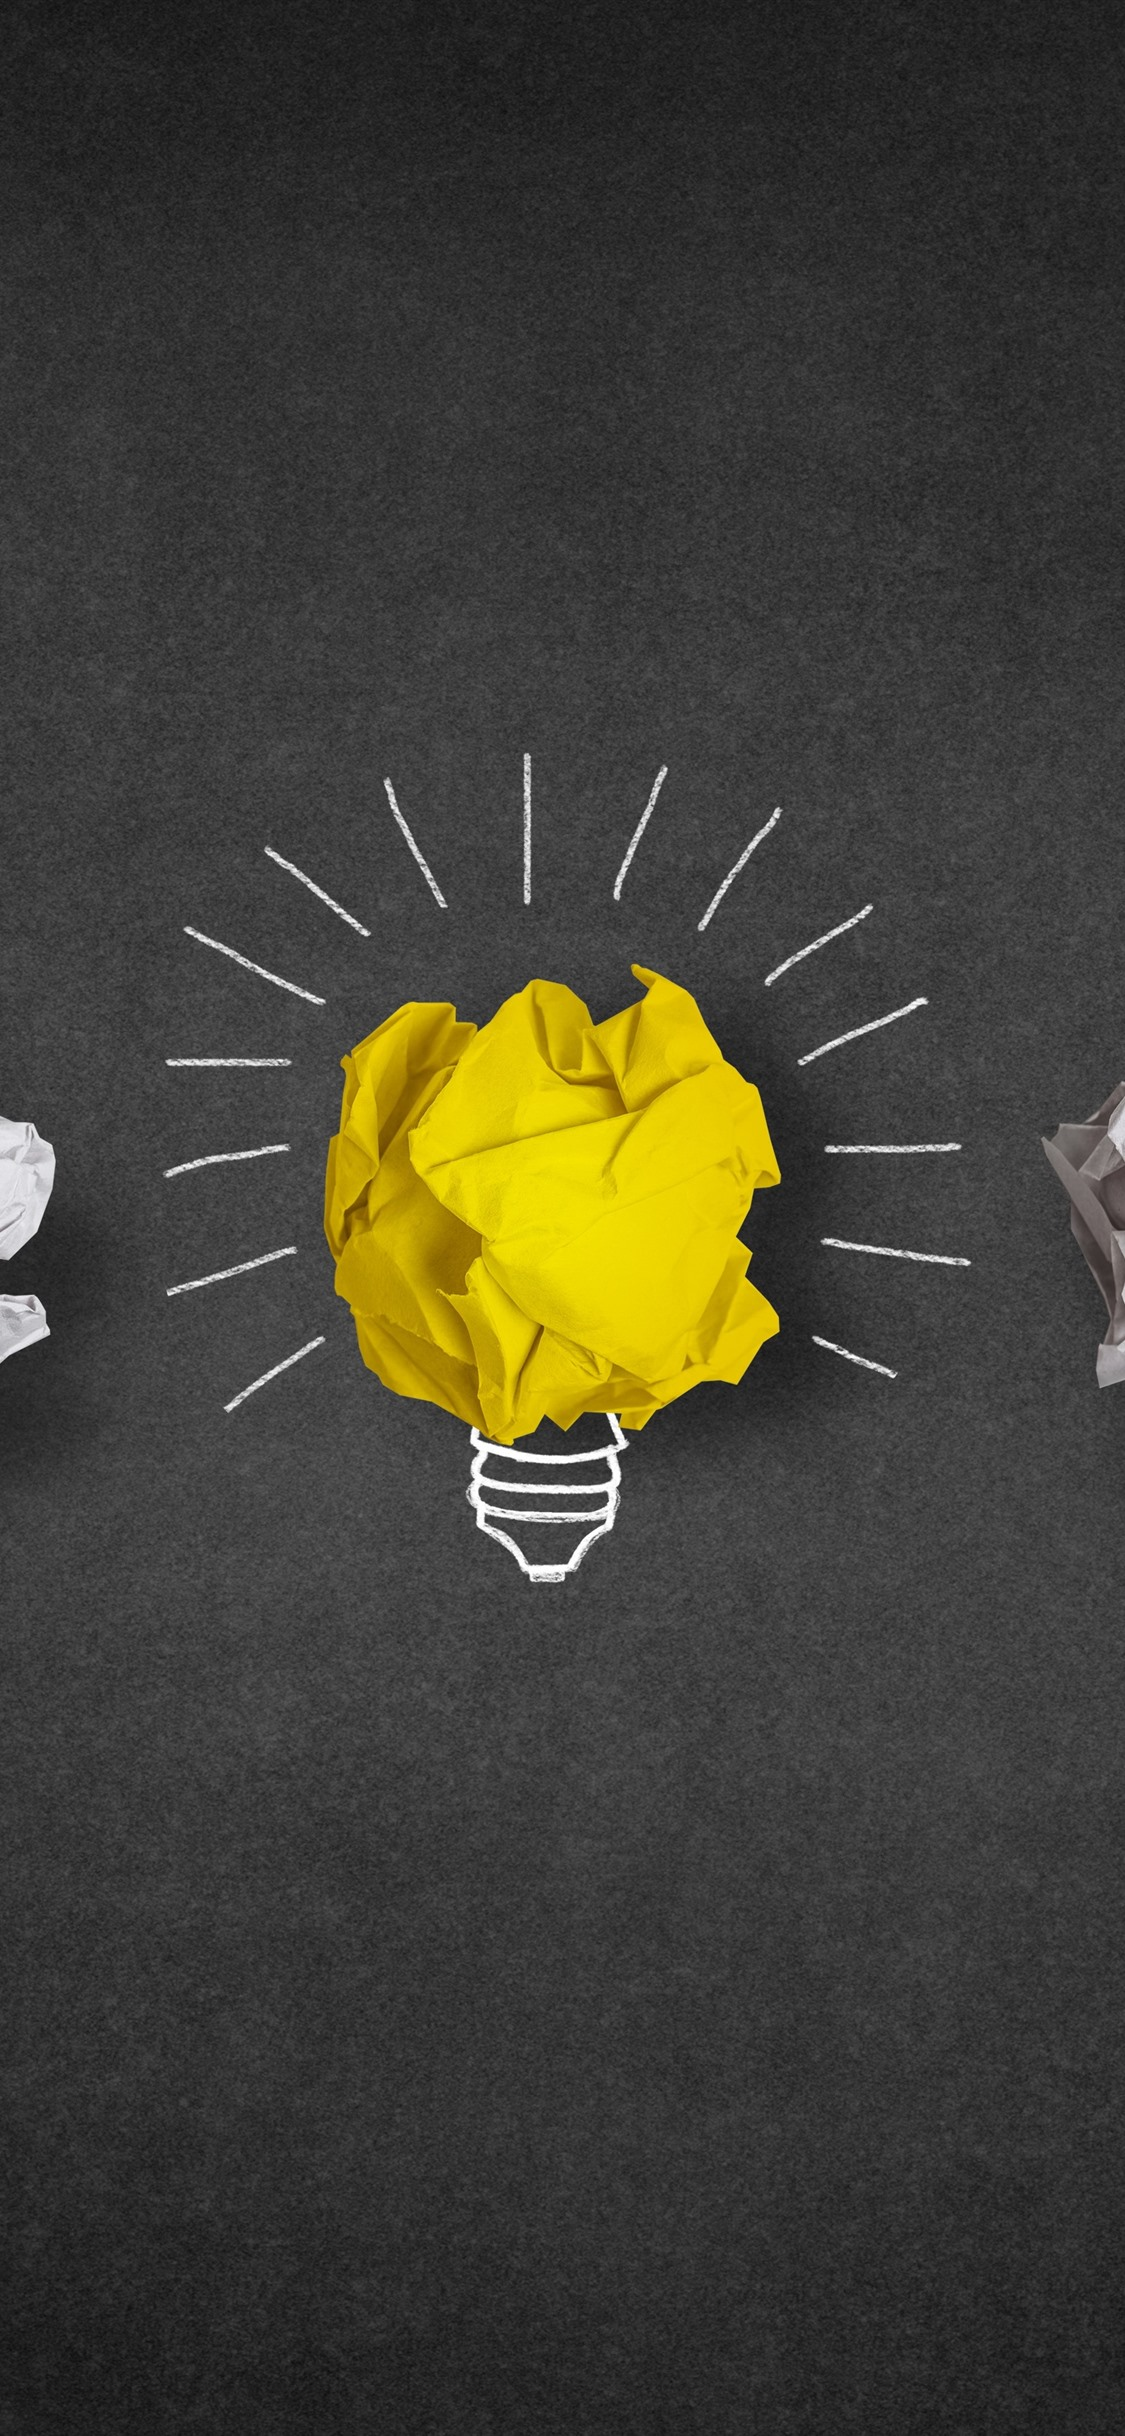 Light Bulb Yellow And White Paper Minimalist 1125x2436 Iphone Xs